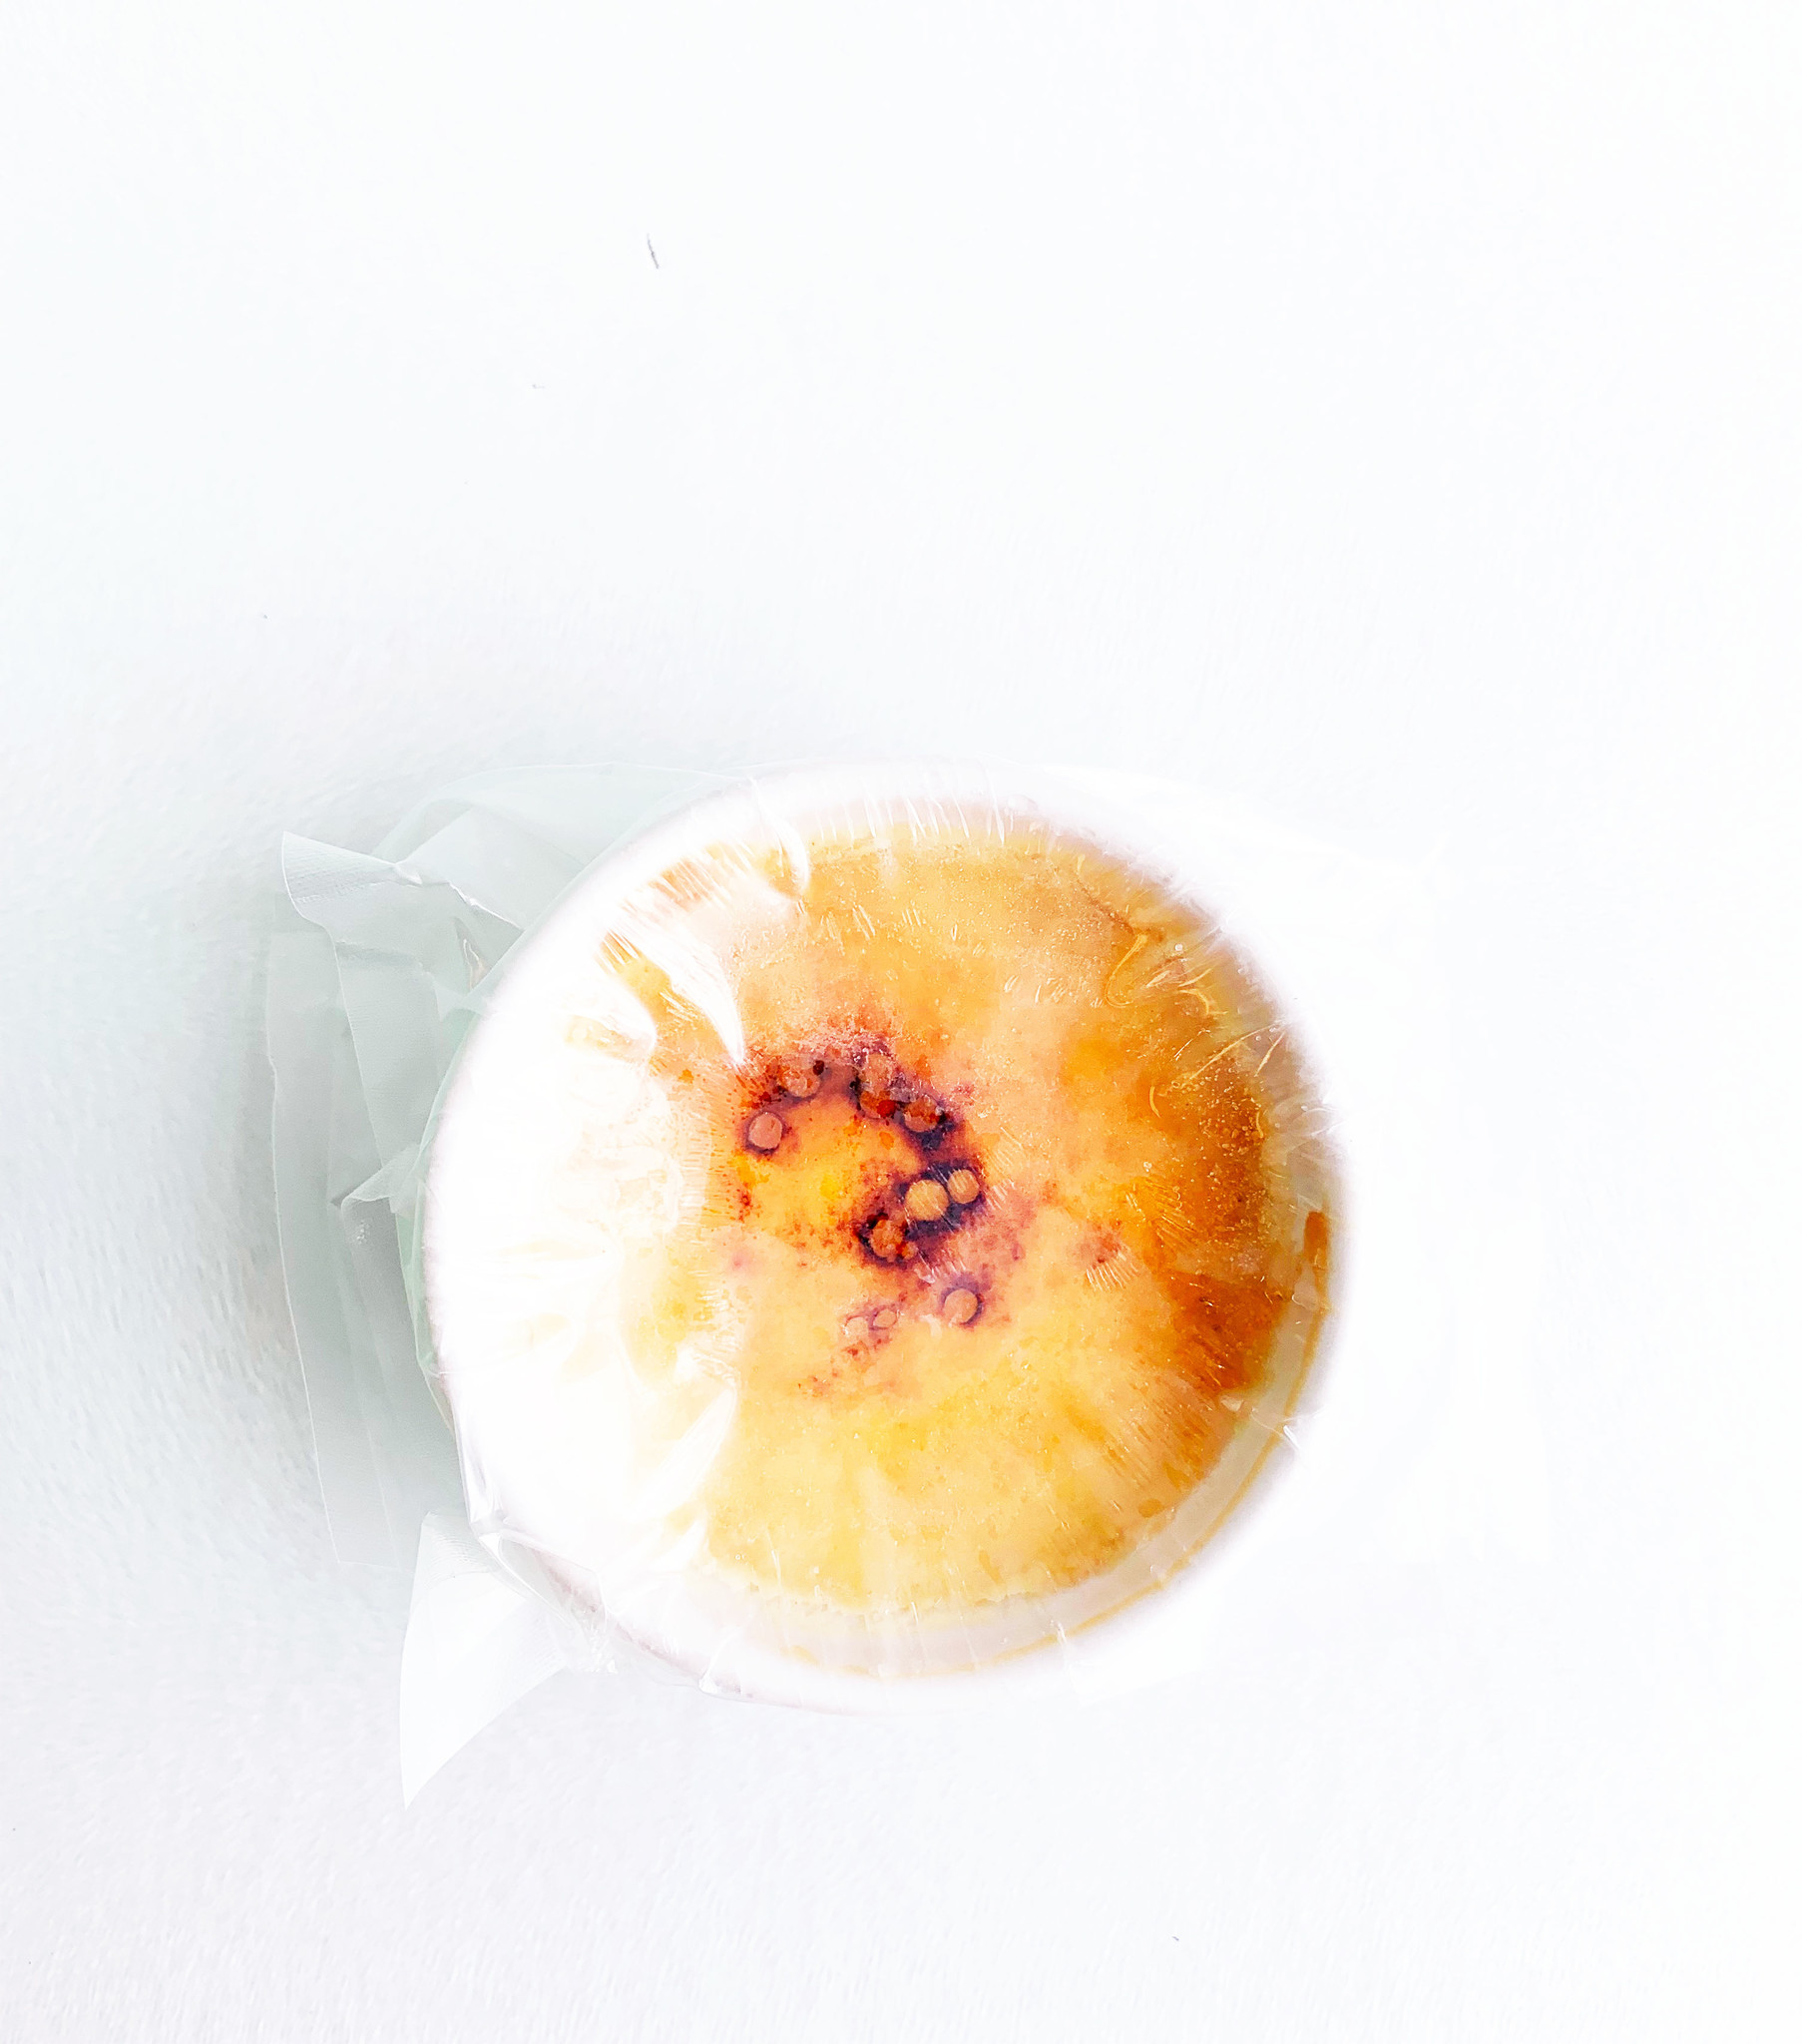 Creme brulee with vanilla